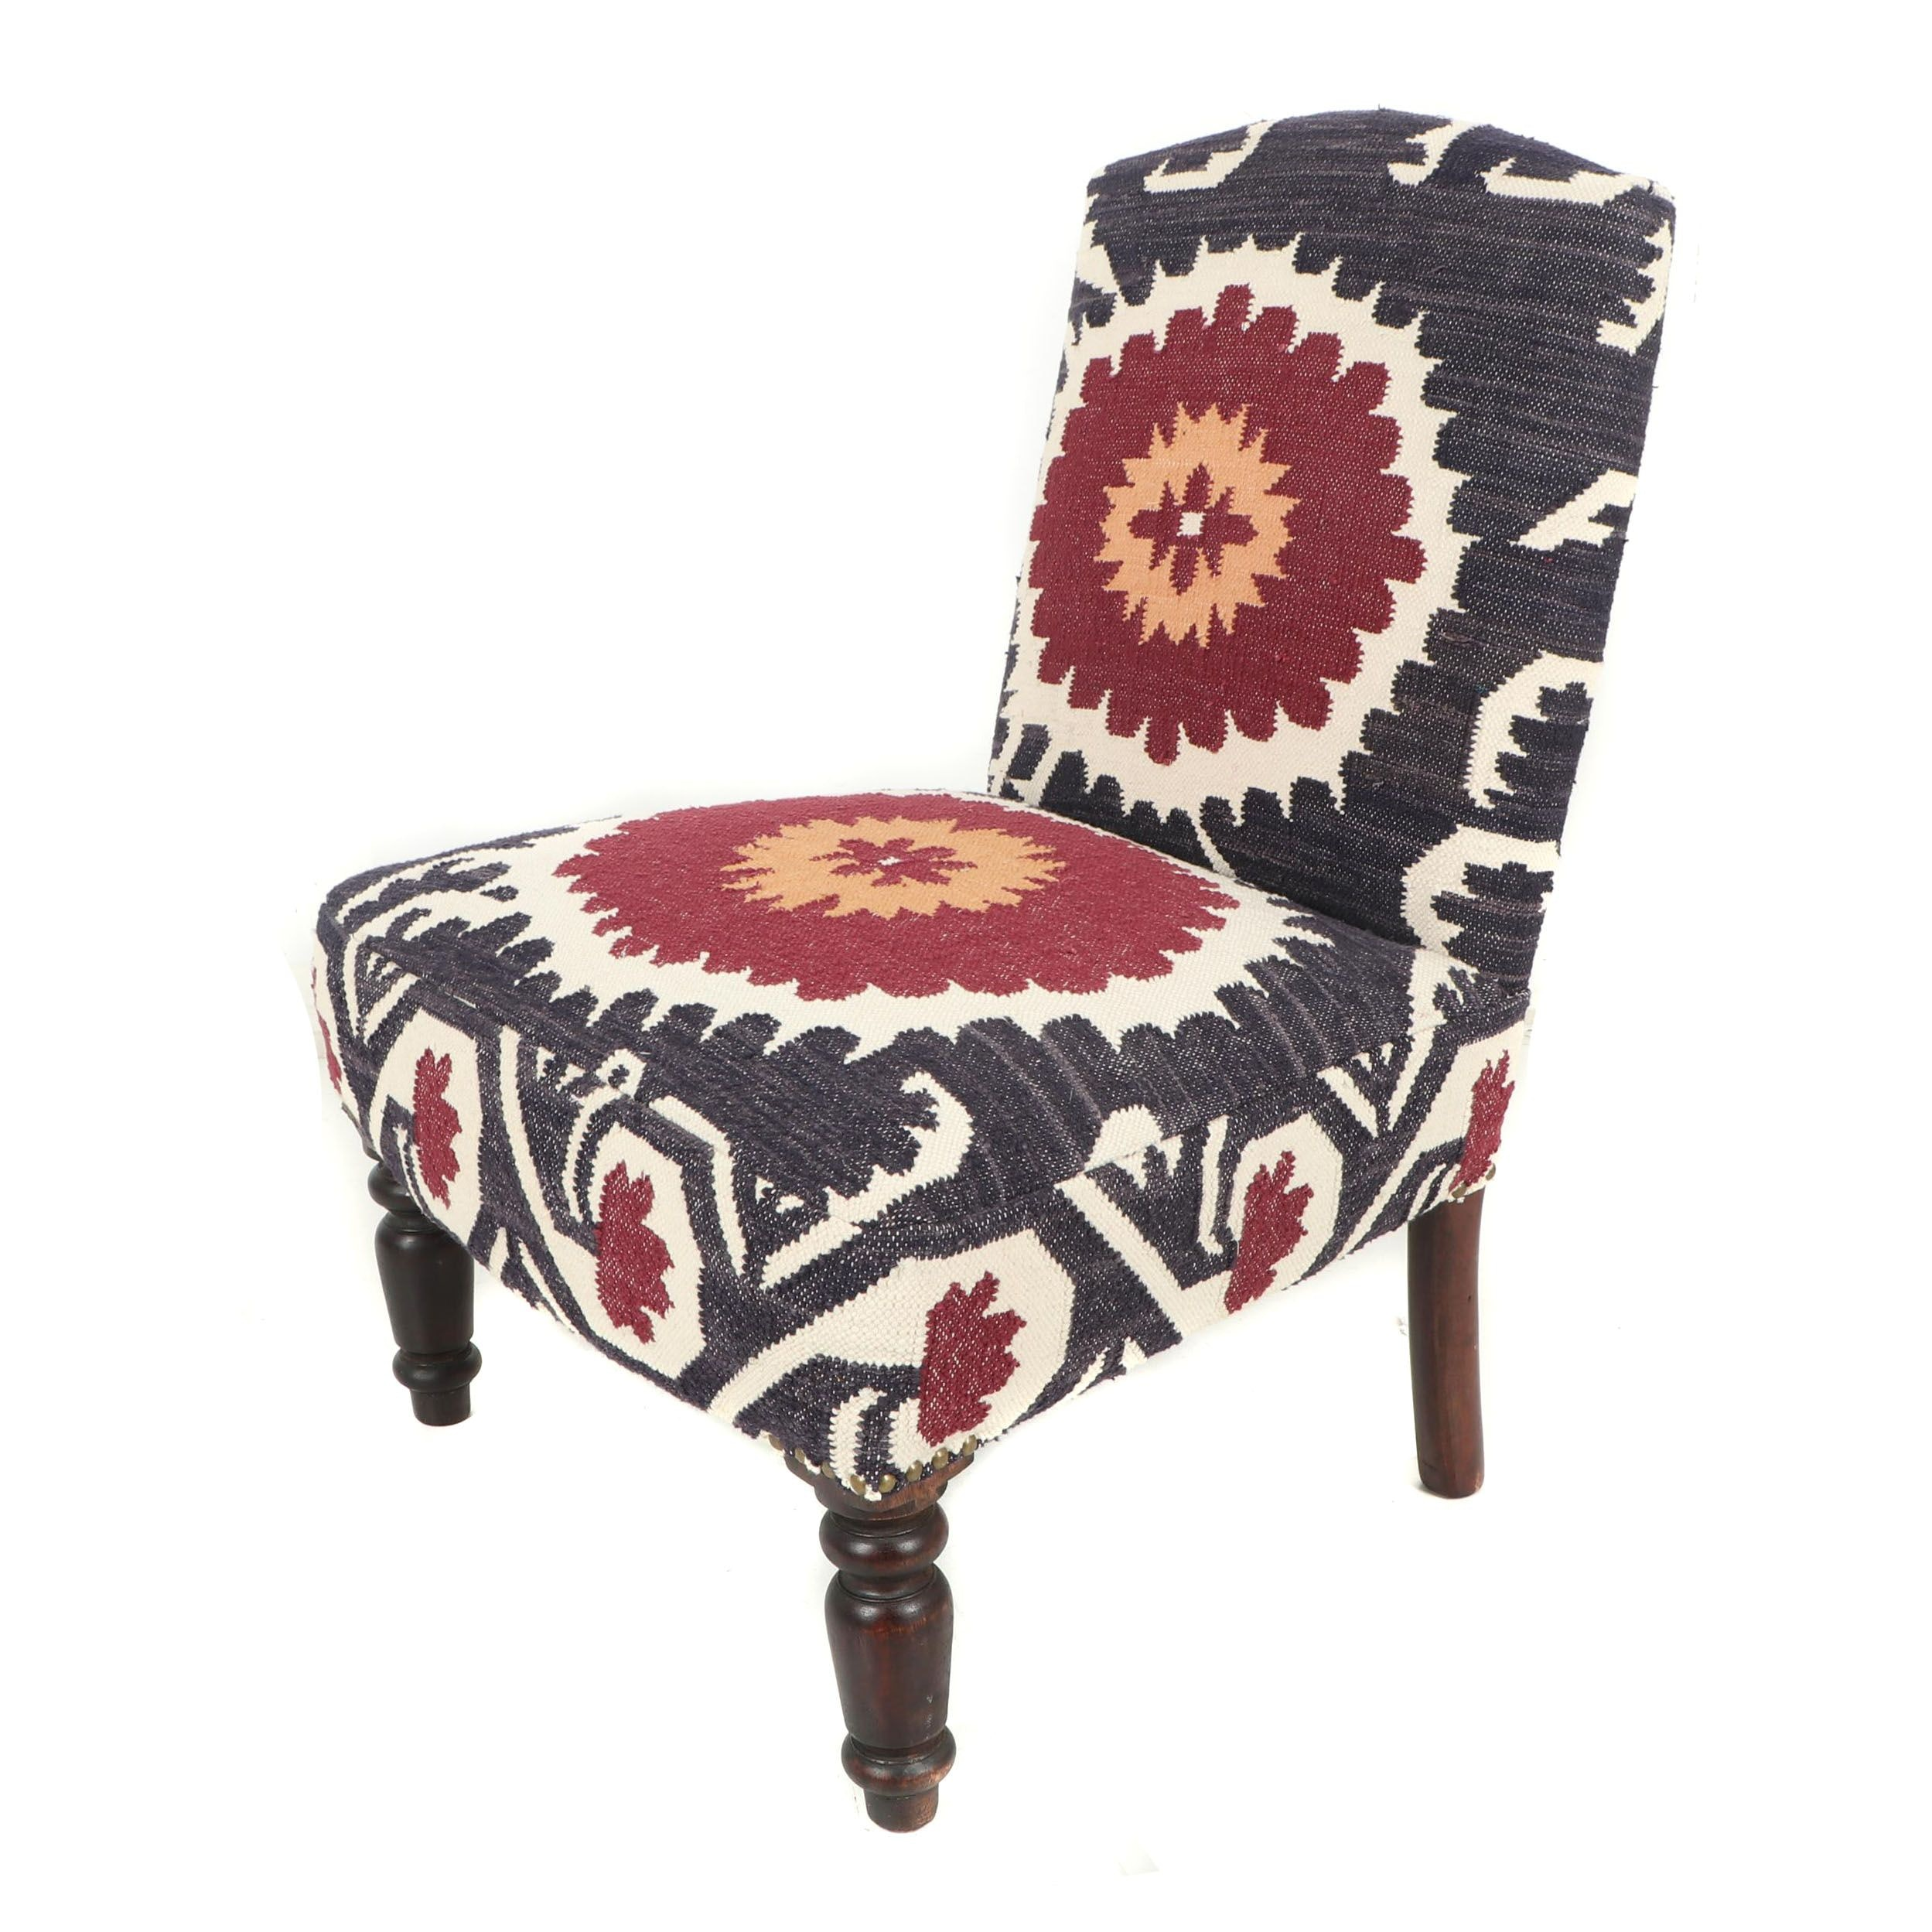 Contemporary Upholstered Side Chair in Flat Woven Rug Material